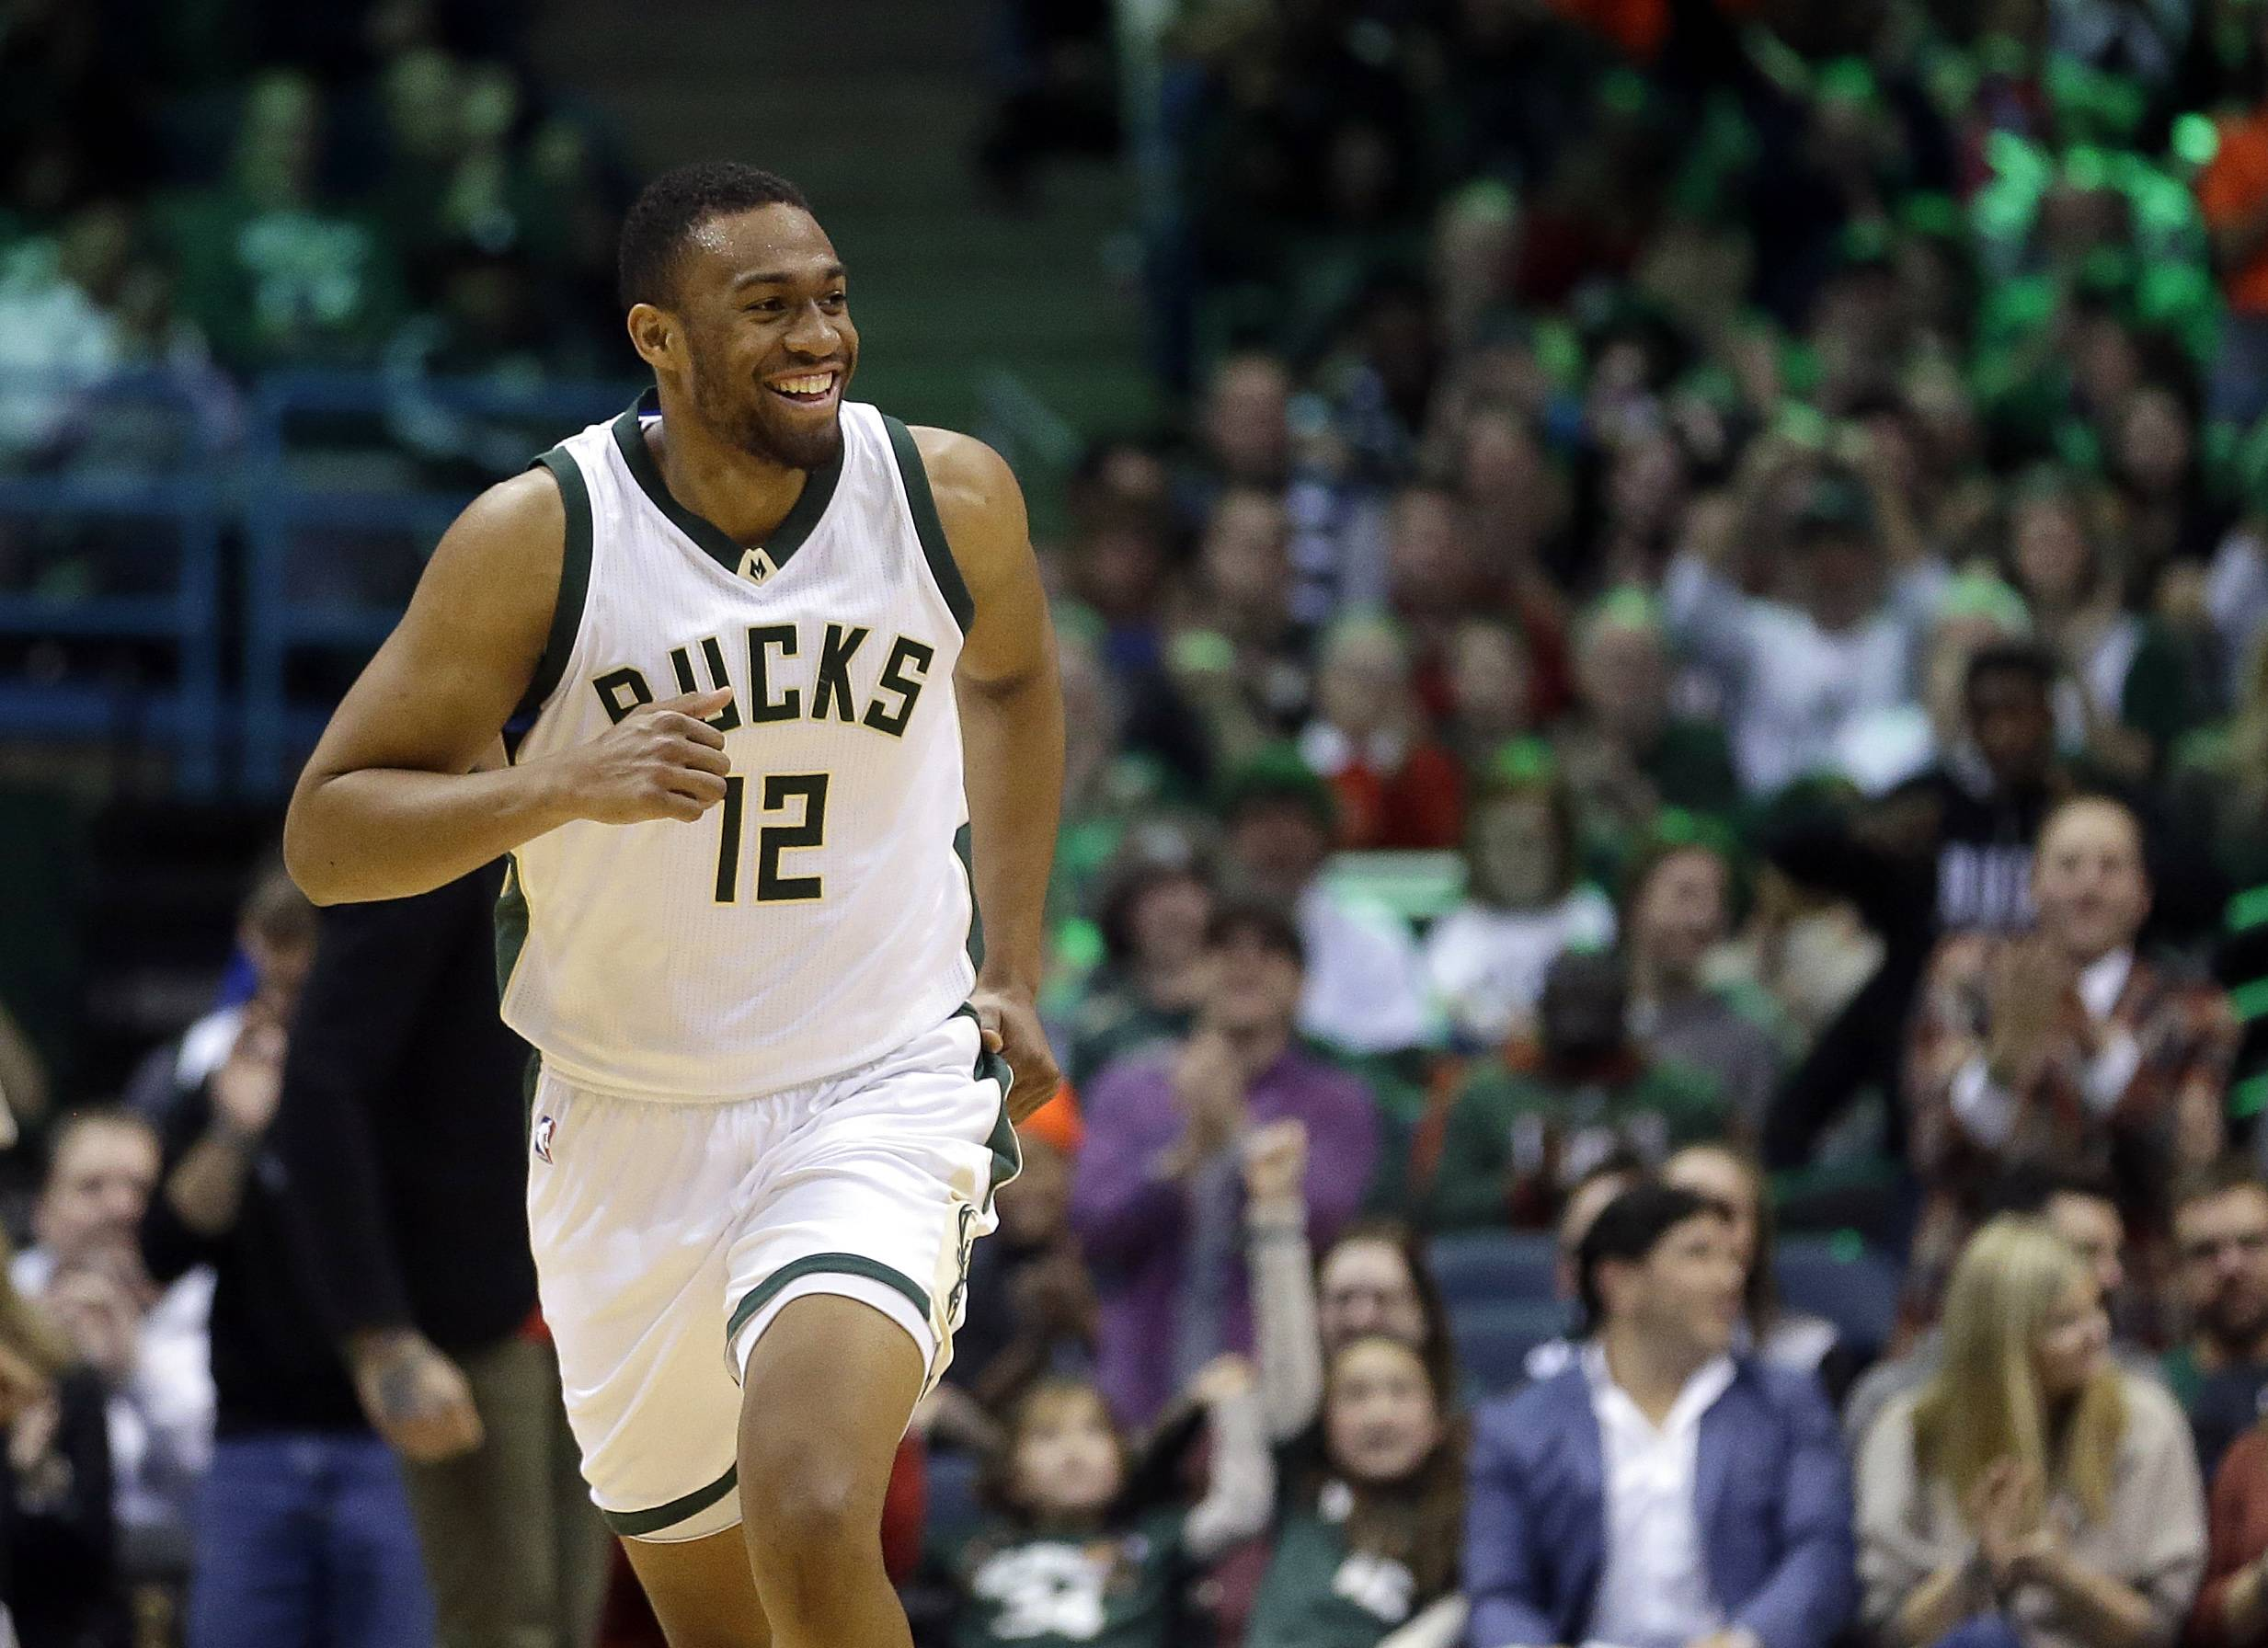 Bucks taking extra caution with Chicago native Parker's recovery